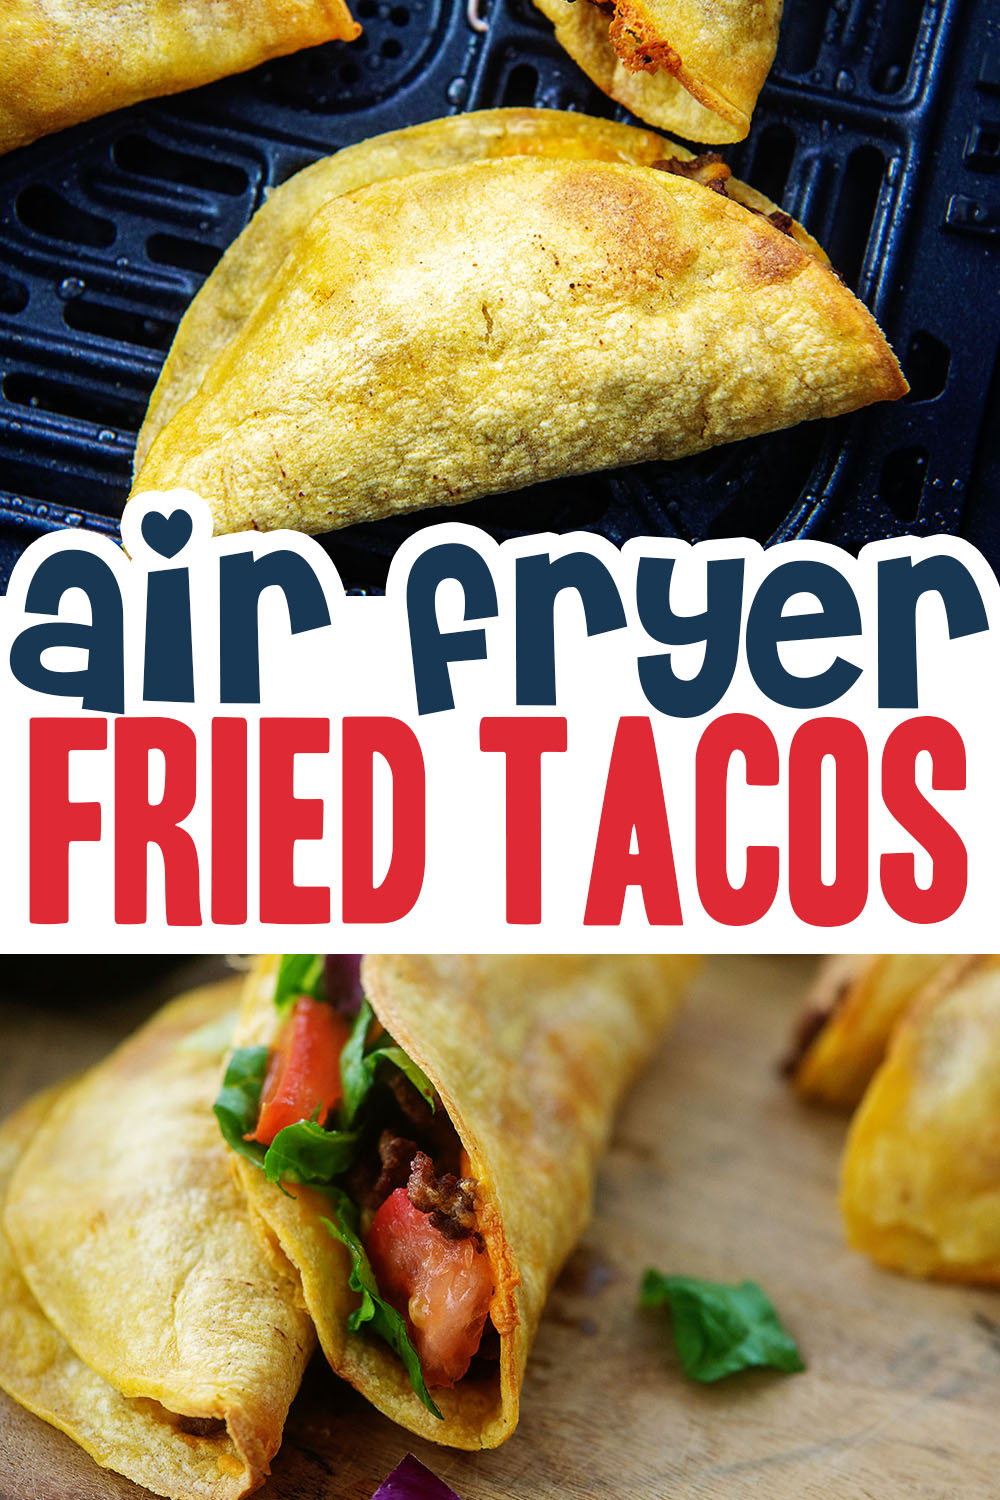 Air fryer fried tacos are less greasy than traditional fried tacos, but still taste absolutely amazing!